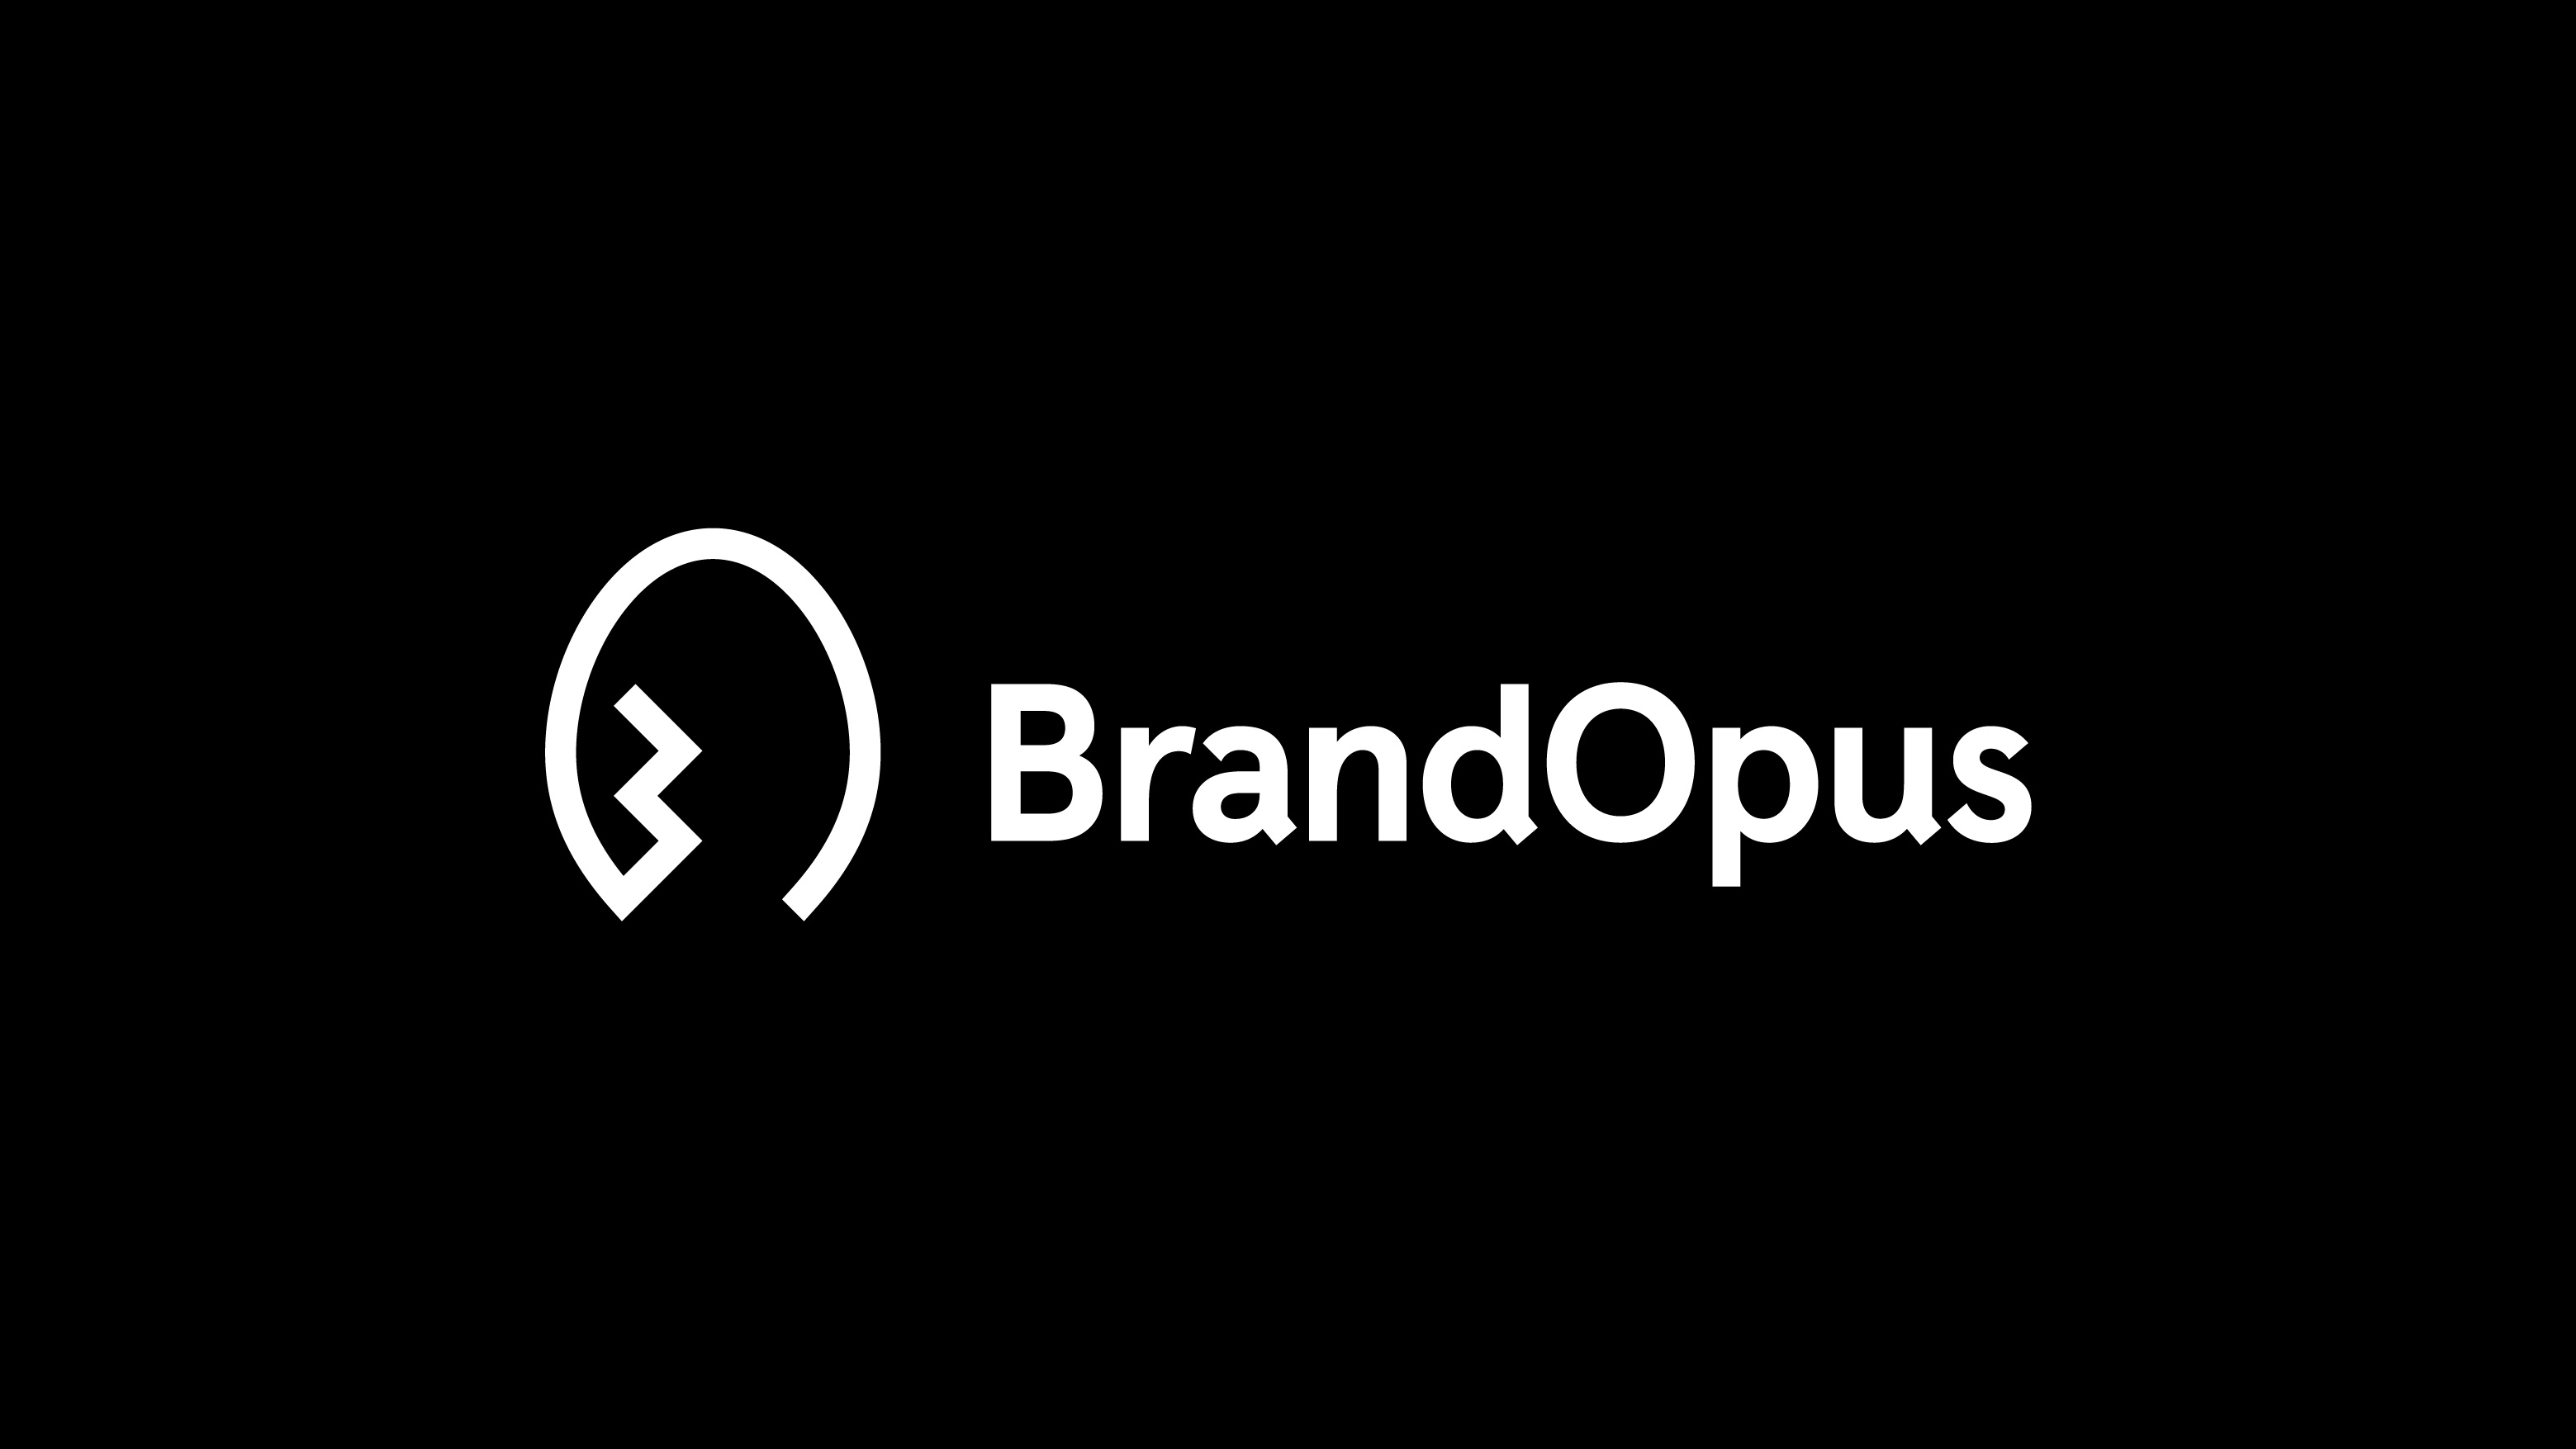 BrandOpus Heroes its People and Unique Brand of Creativity with Identity Overhaul